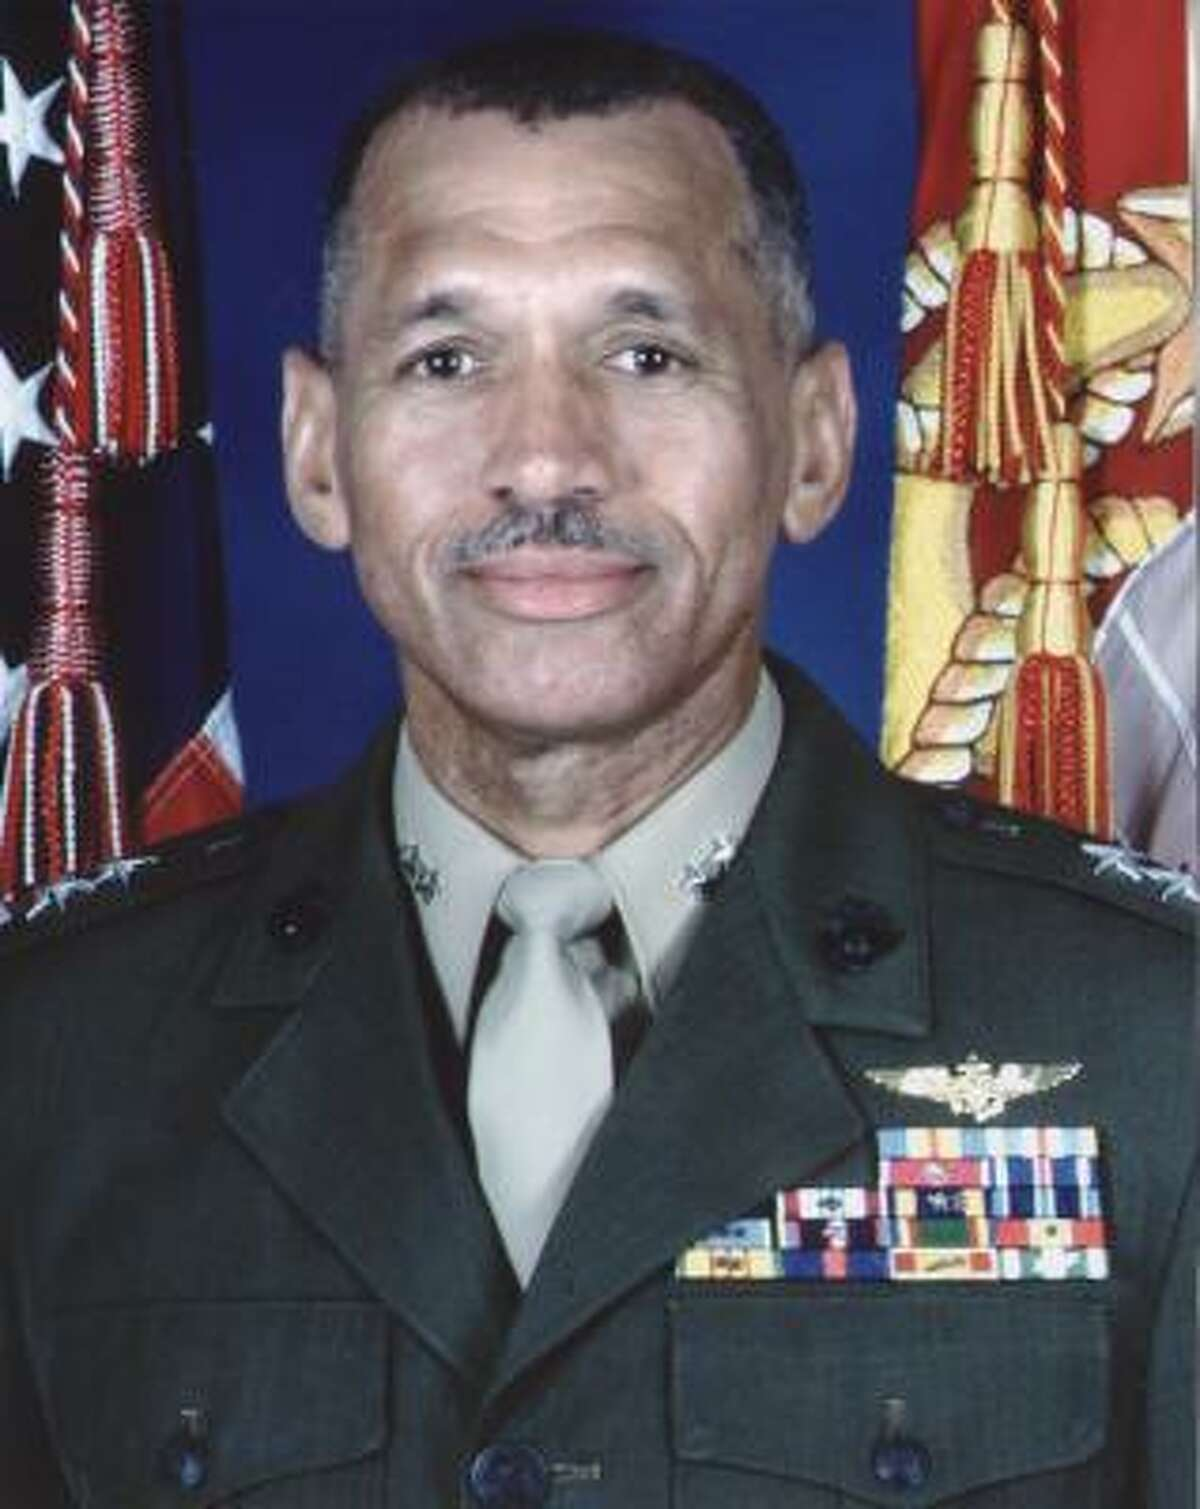 Reports of his name surfacing as a contender for NASA administrator have surprised Charles Bolden Jr., a retired Marine Corps general who made four trips into space.